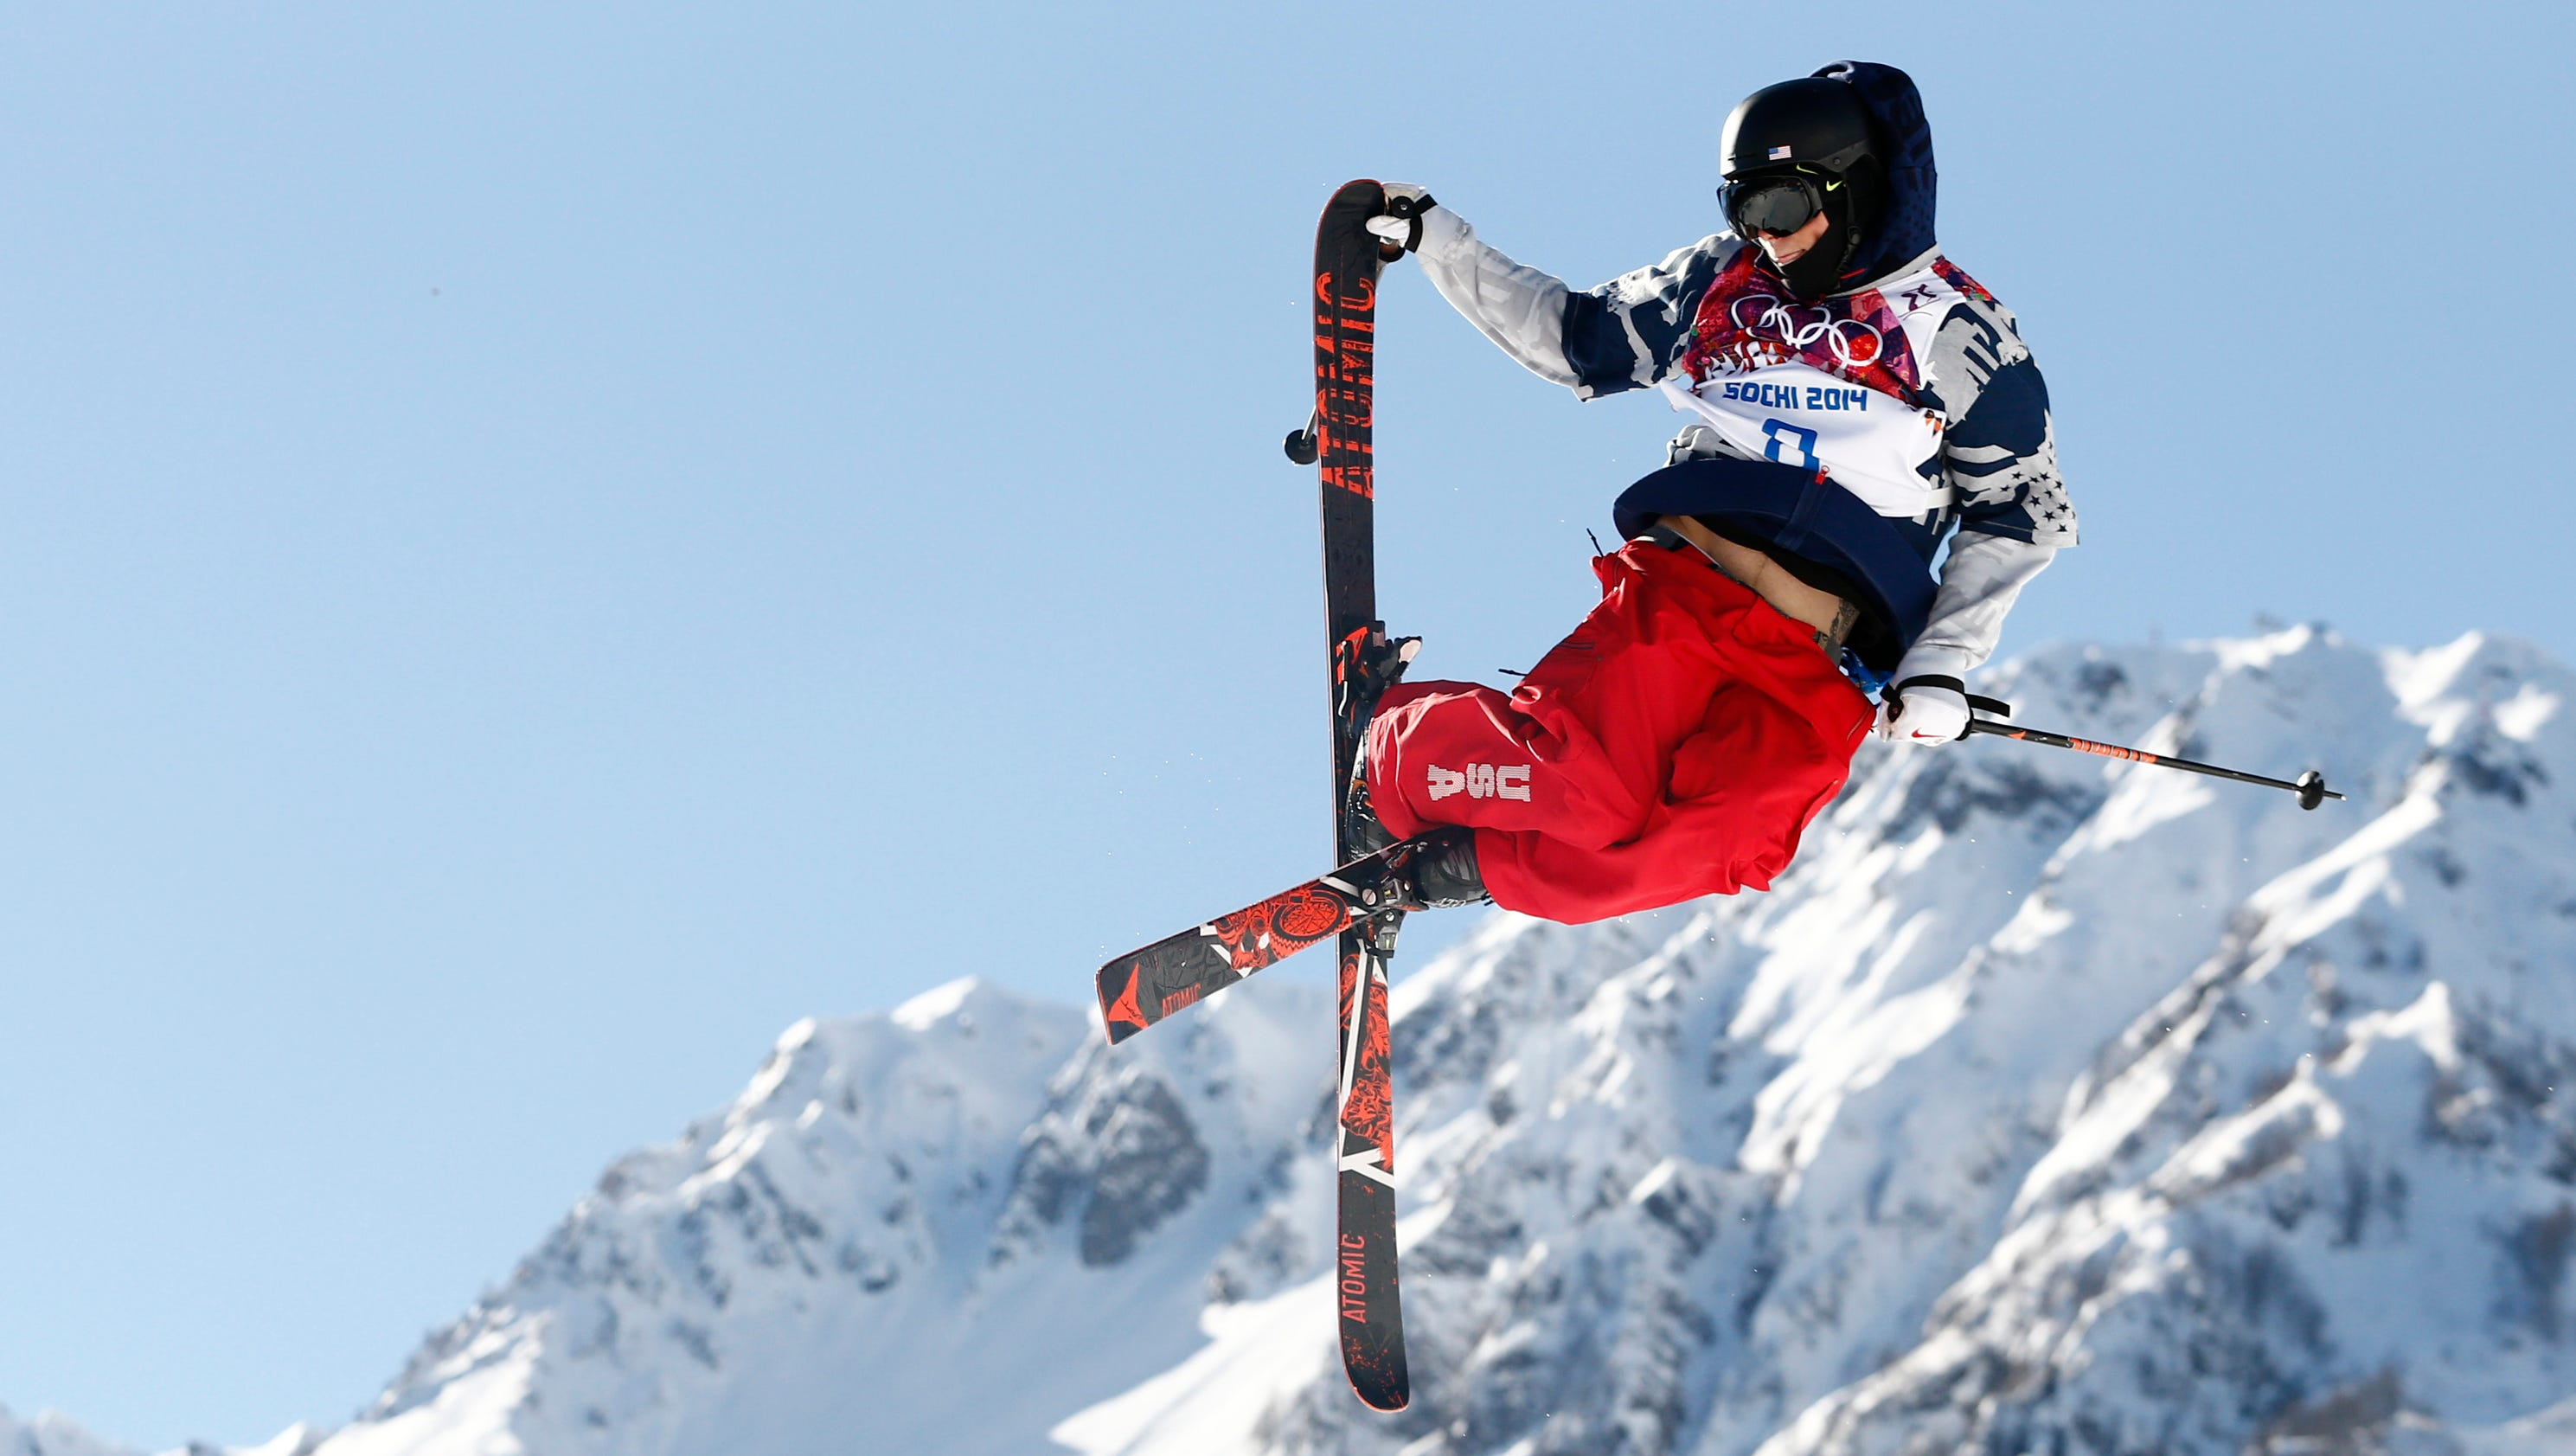 Gus Kenworthy, now X Games medalist, excited 'to be authentic' after ing out as